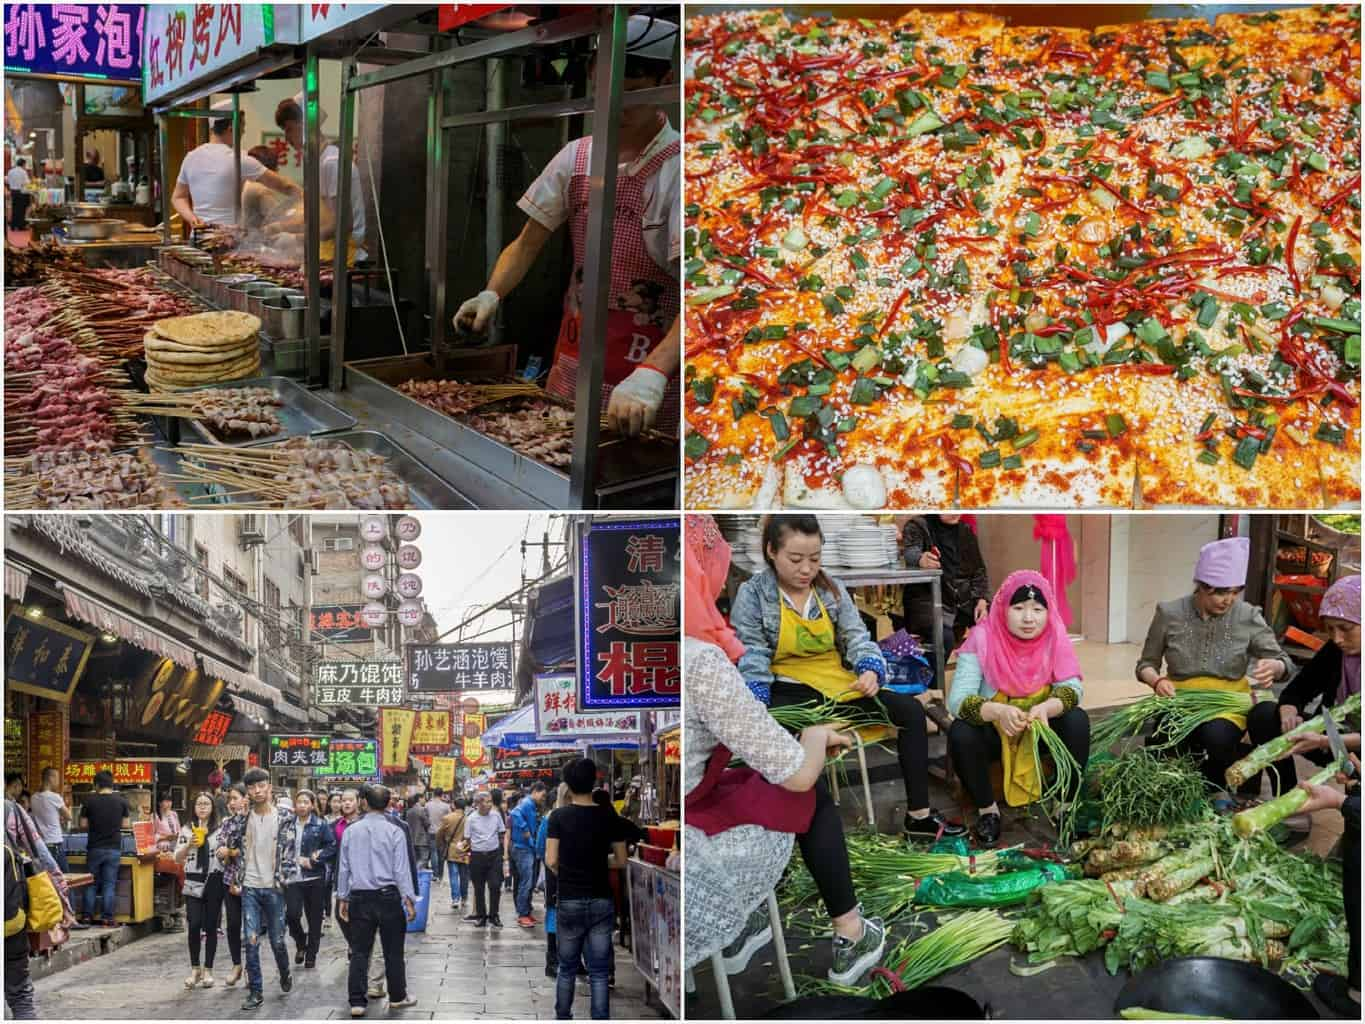 image collage of scenes from Xi'an's Muslim quarter in China